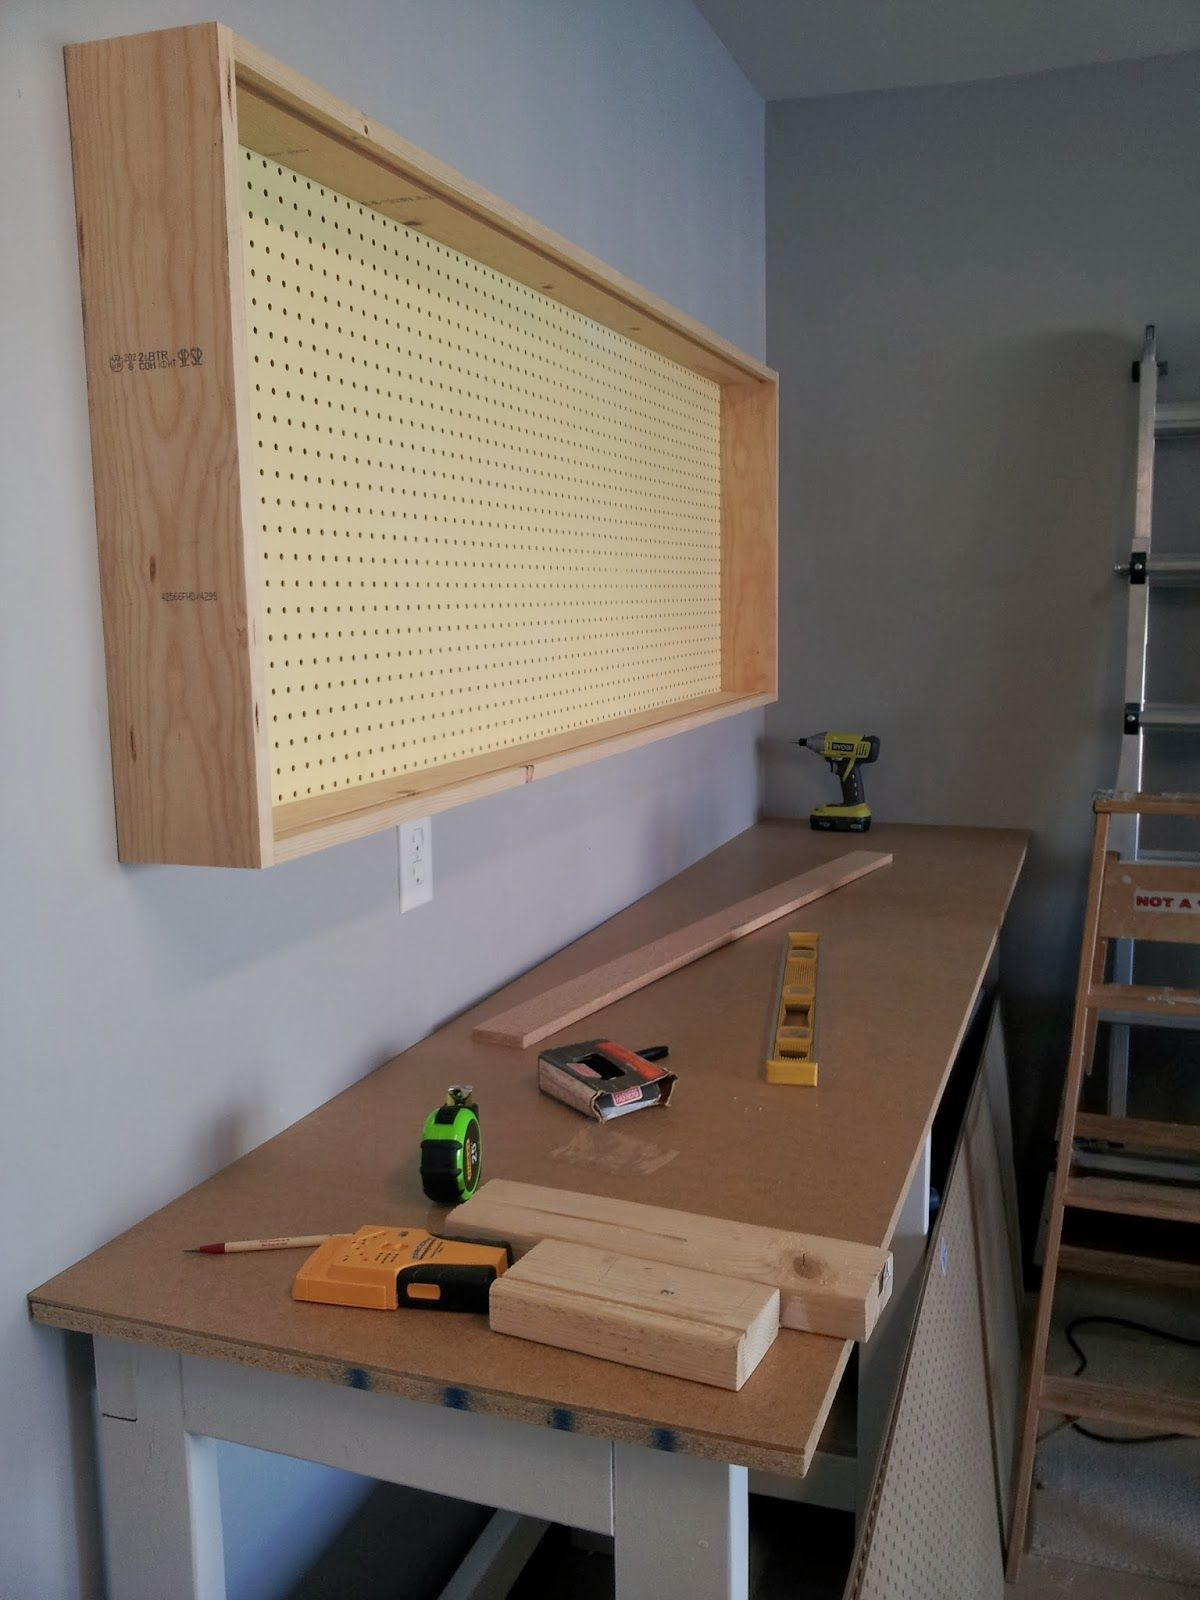 Base Of Pegboard Wall Mounted Tool Organizing Cabinet Featured On